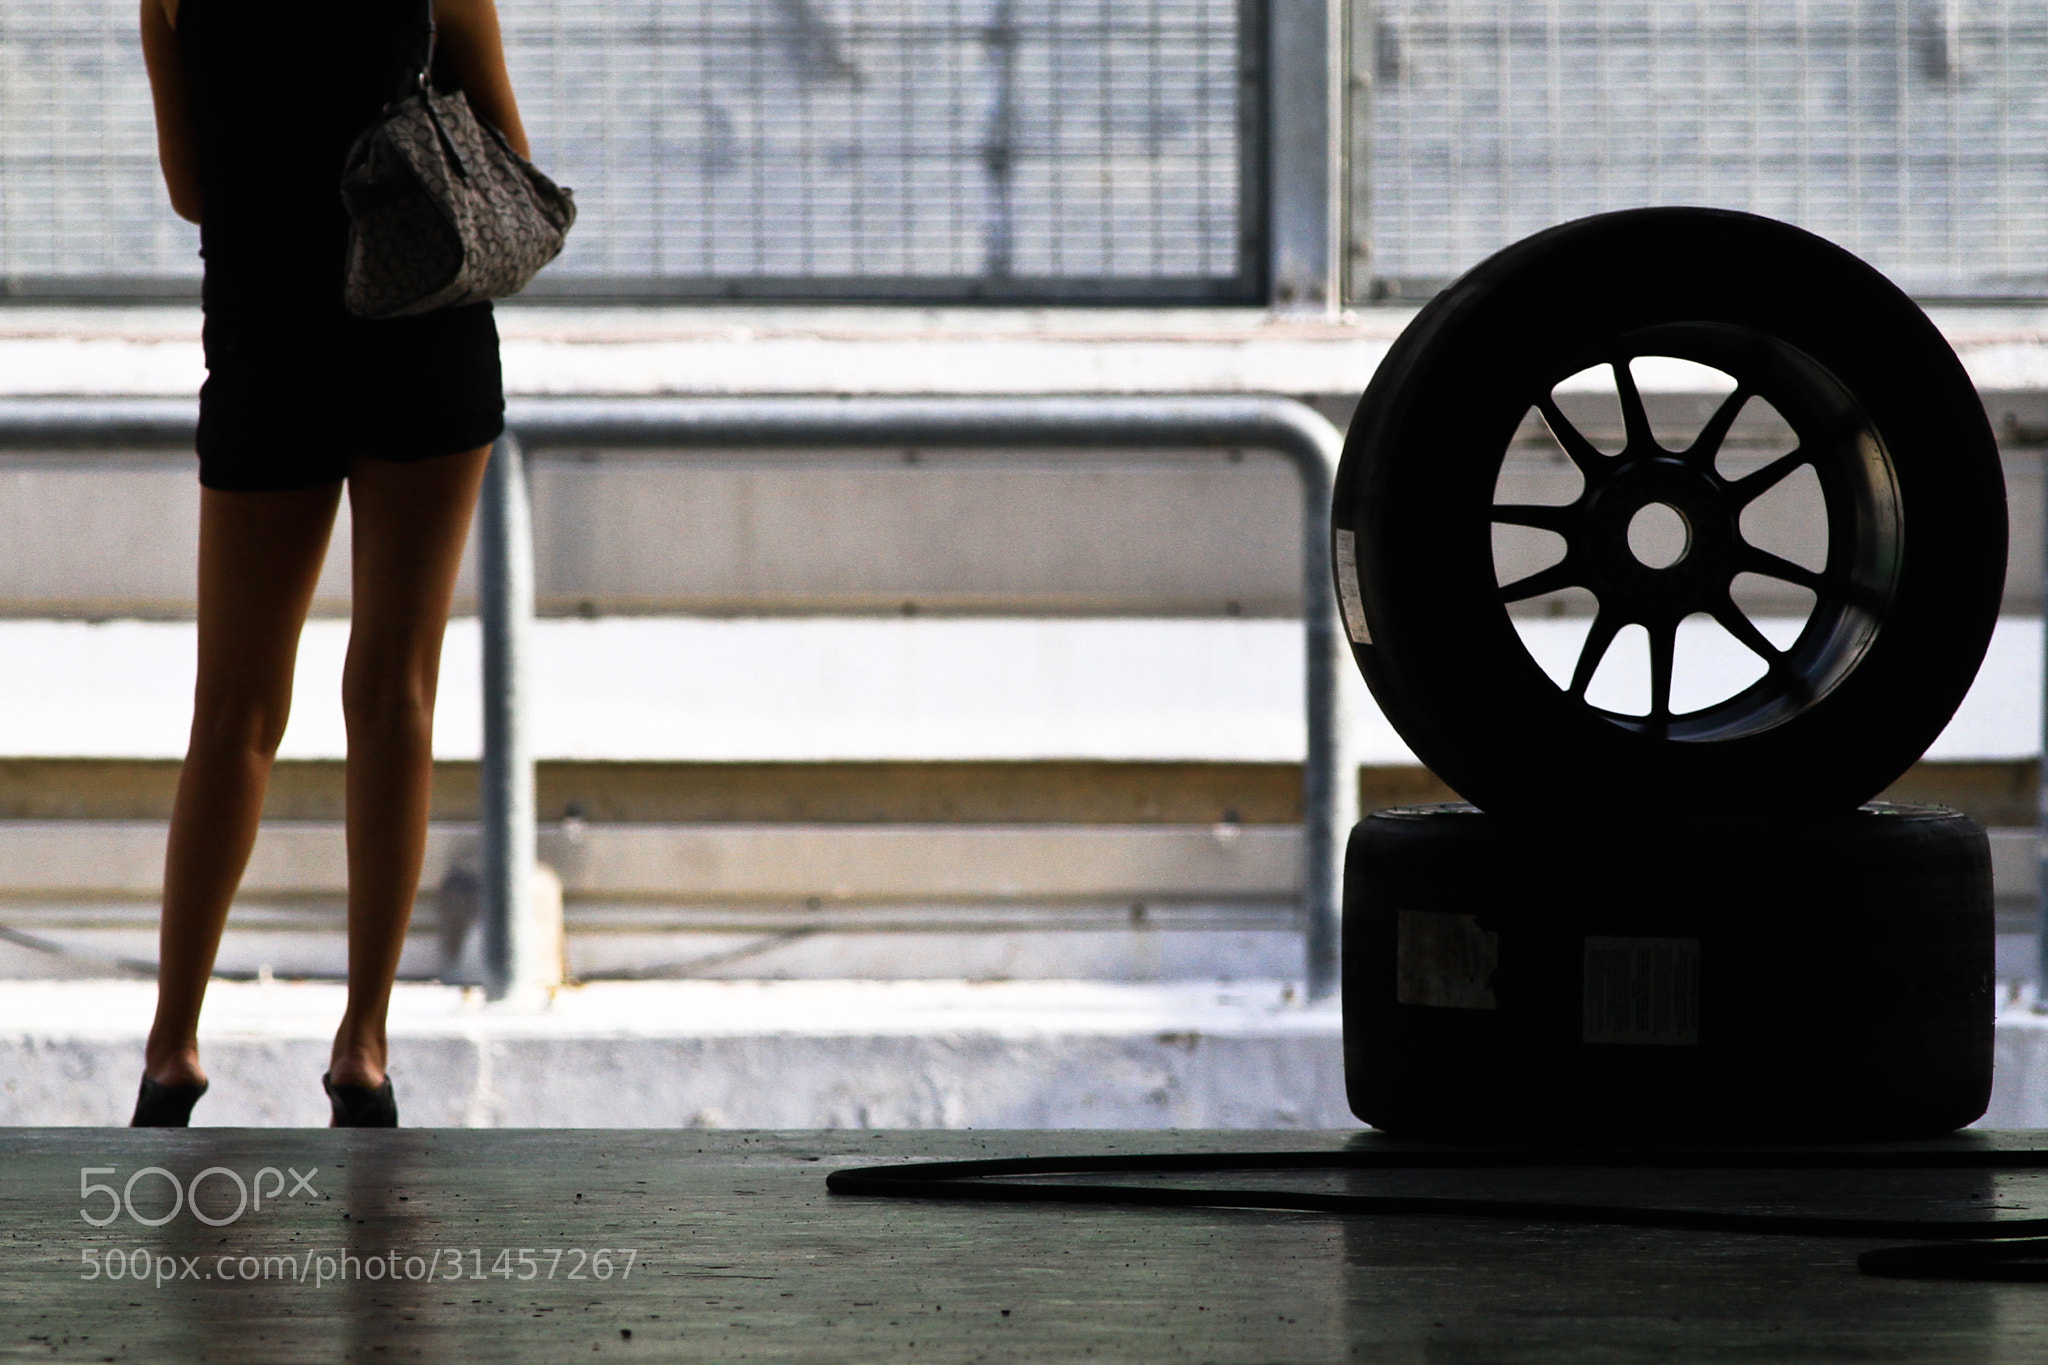 Photograph Girl in the Pitlane by Hazrin CRIC on 500px